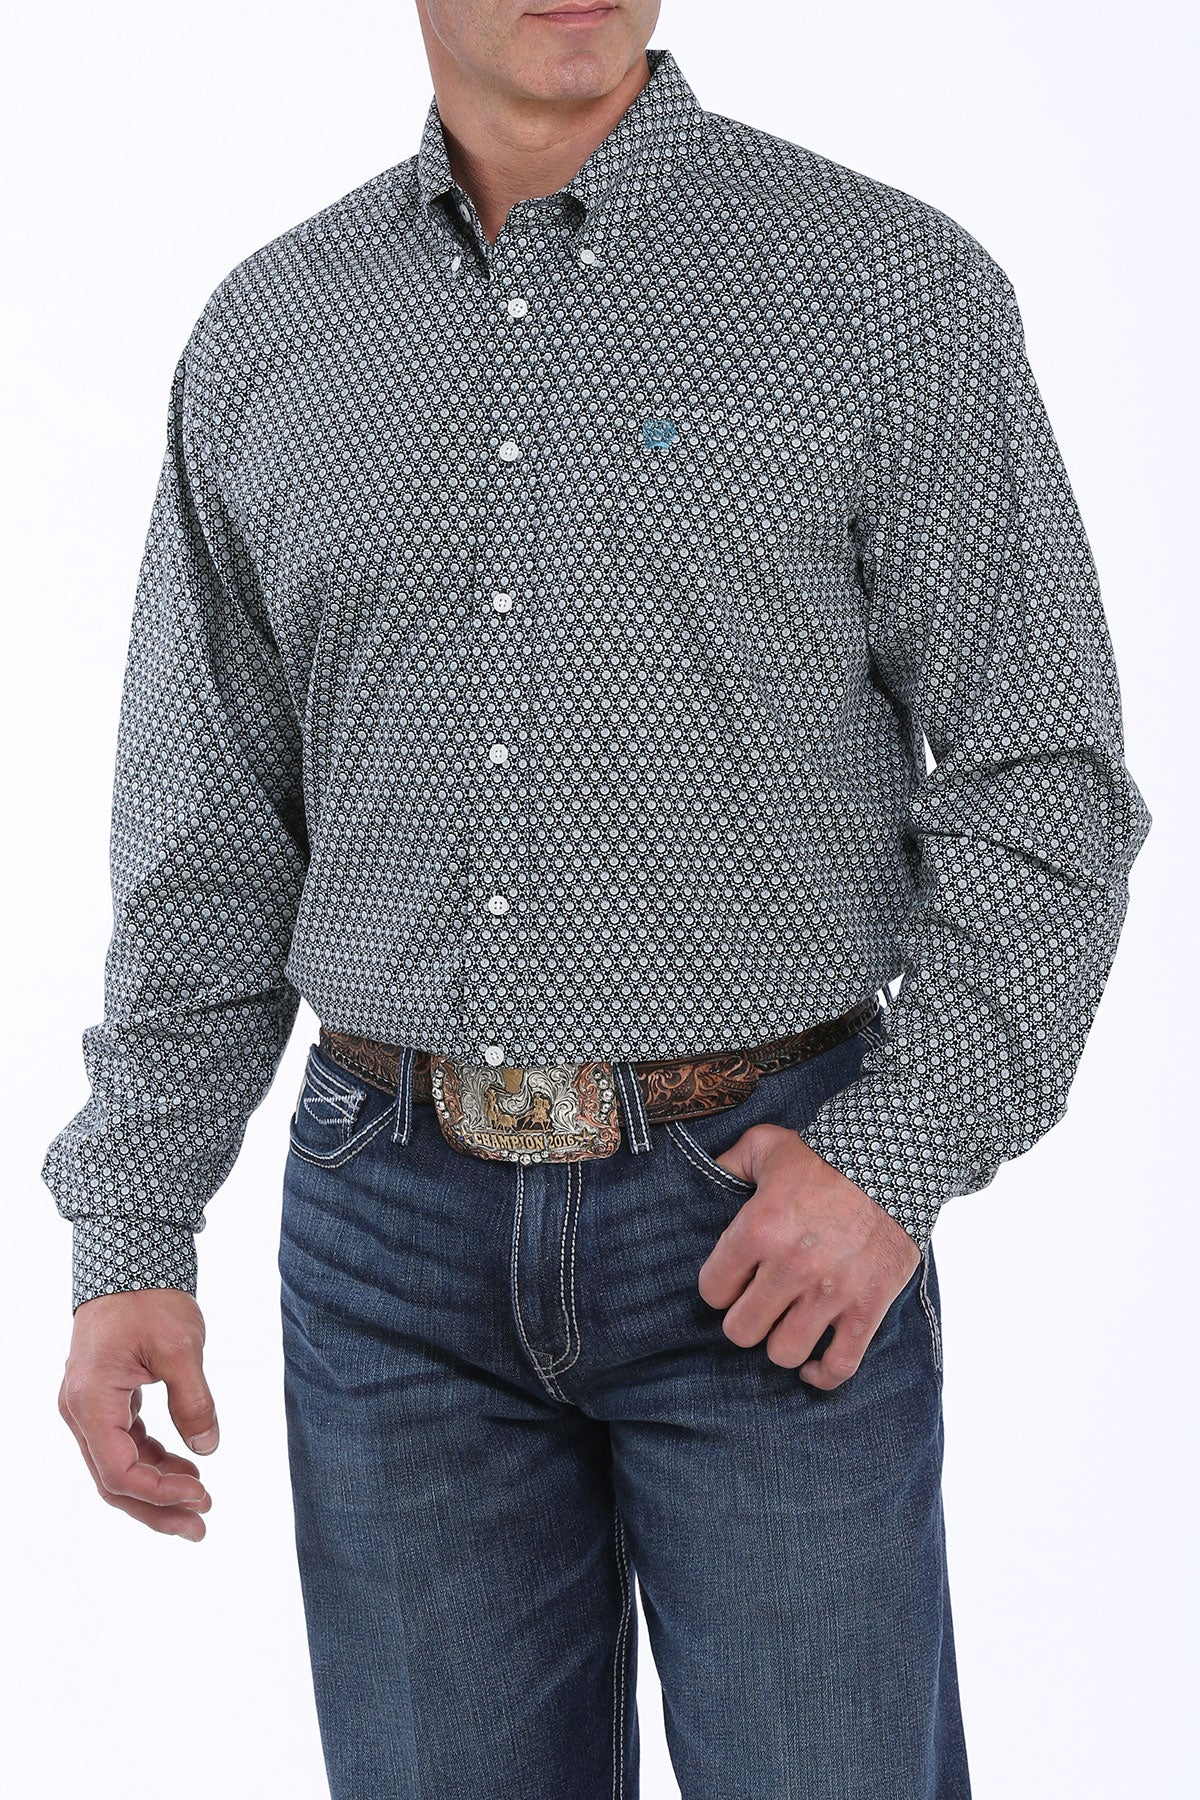 'Cinch' MTW1104875 - LS Geo Print Button Down - Black / Teal